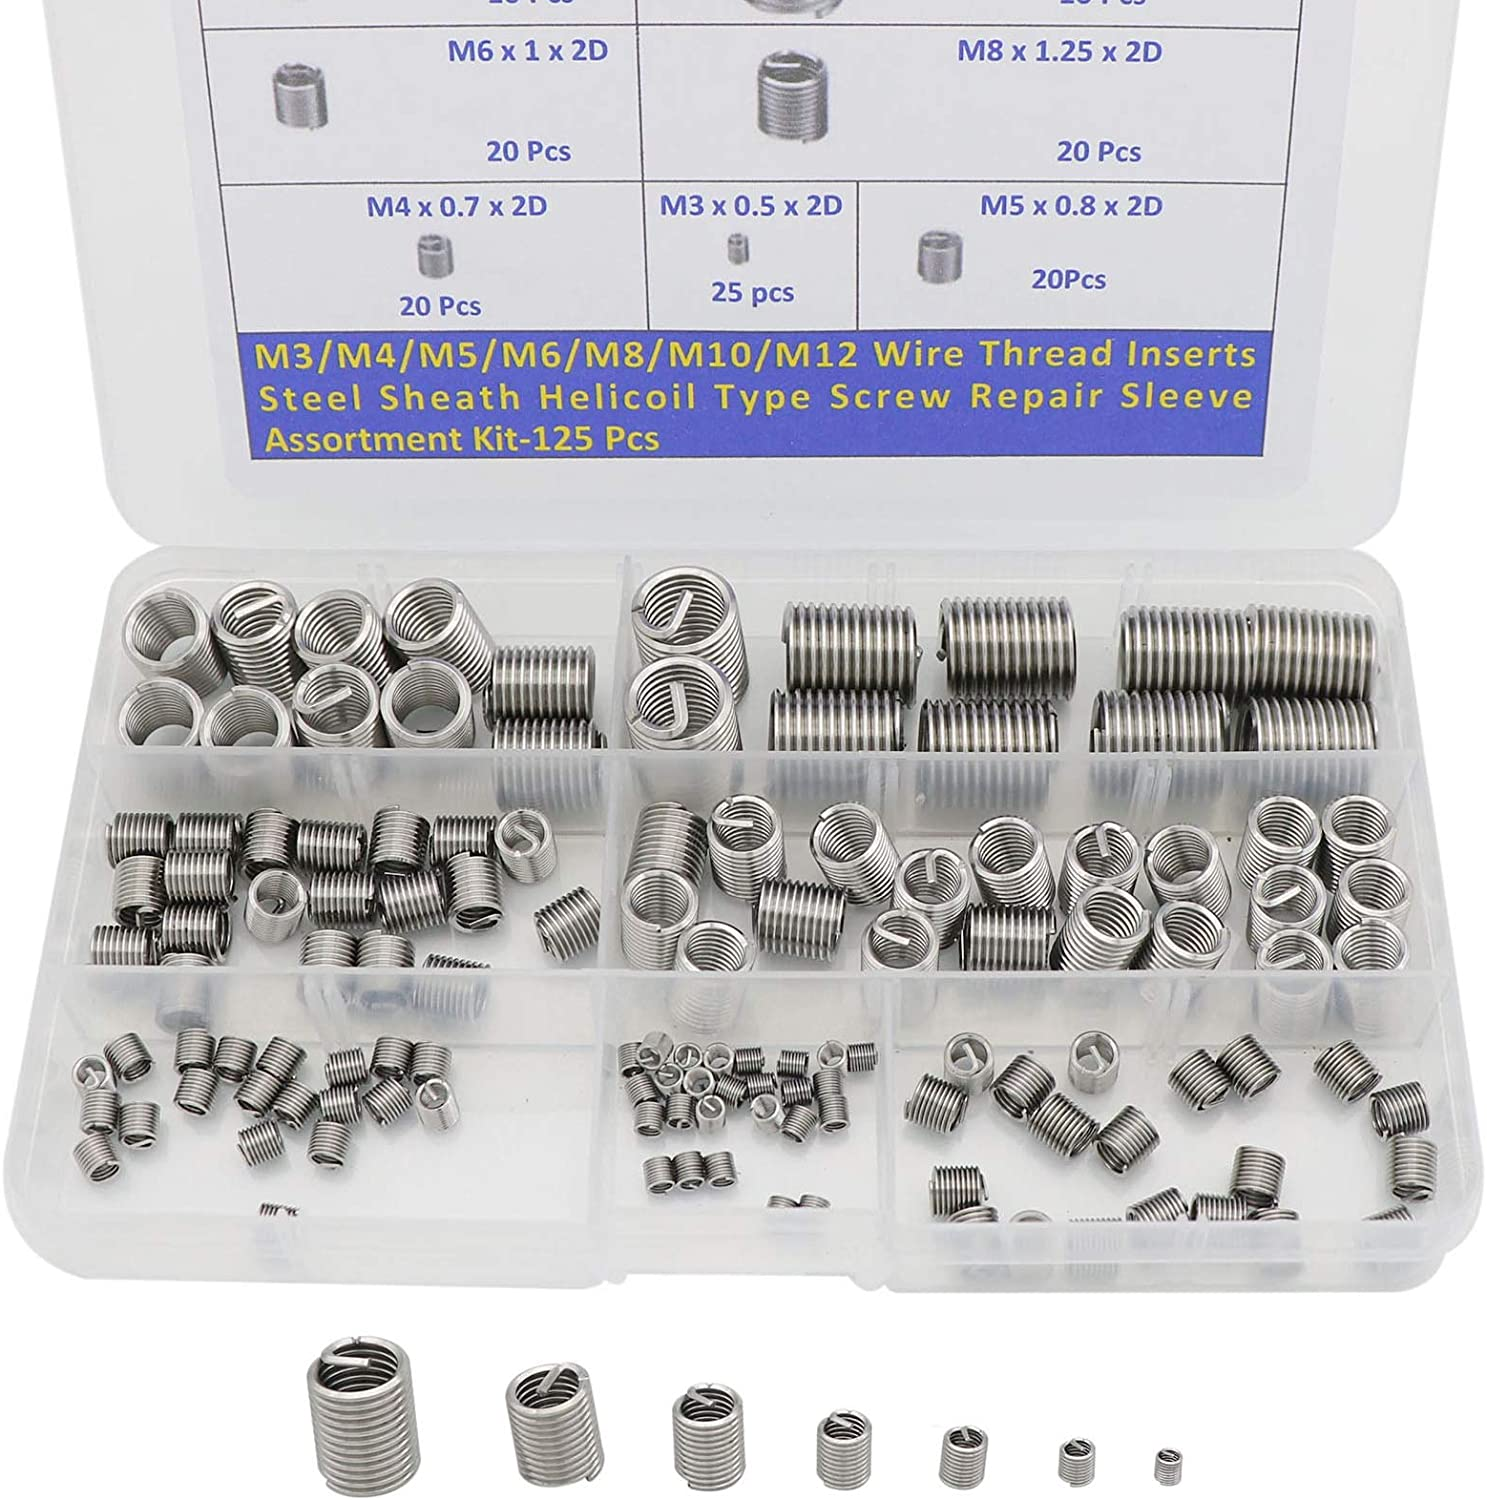 M6121.5 Metric Anti-Corrosion Repair Kit Machinery Shop for Home Automotive Yencoly Screw Repair Kit 304 Stainless Steel M3//M4//M5//M6//M8//M10 Flat Washer